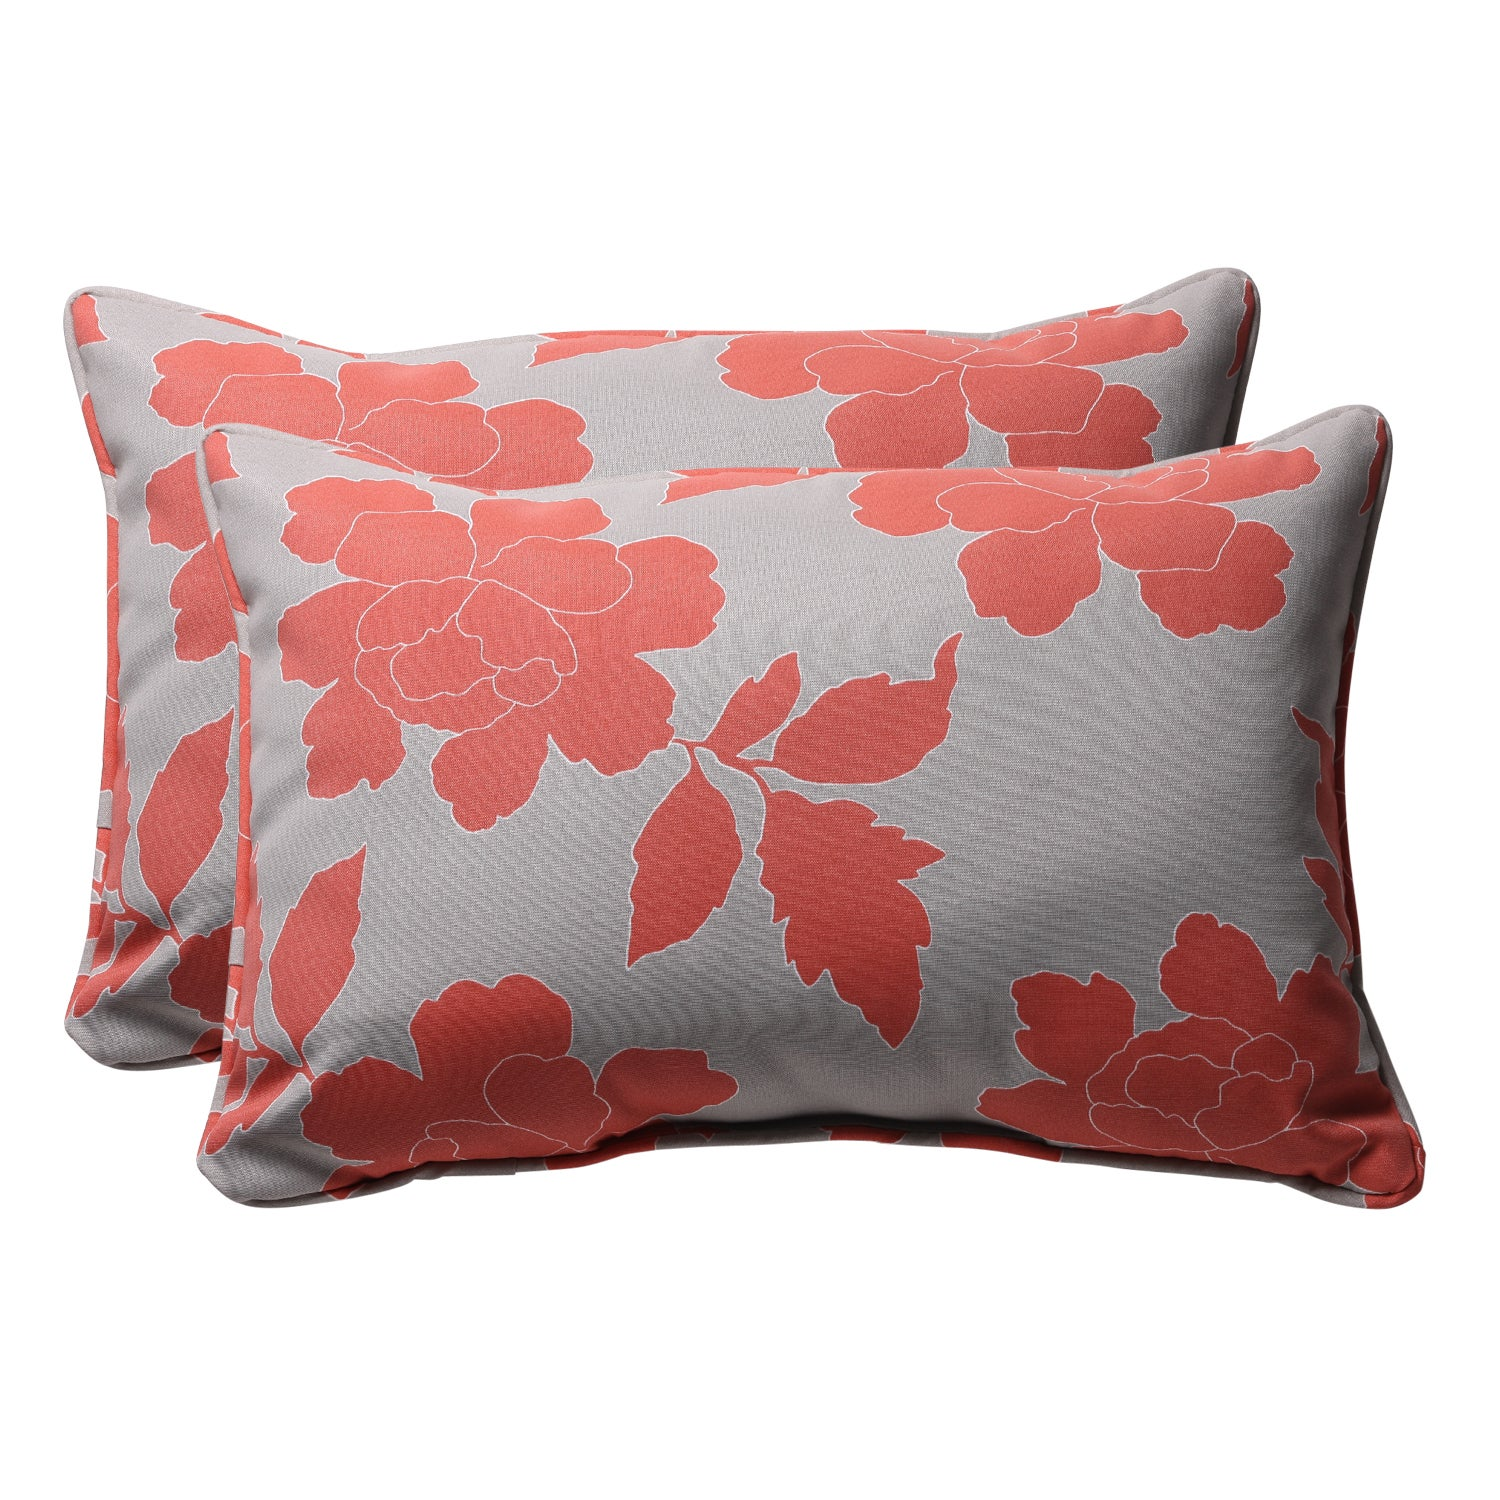 Decorative Grey/ Coral Floral Rectangle Outdoor Toss Pillow (Set of 2)